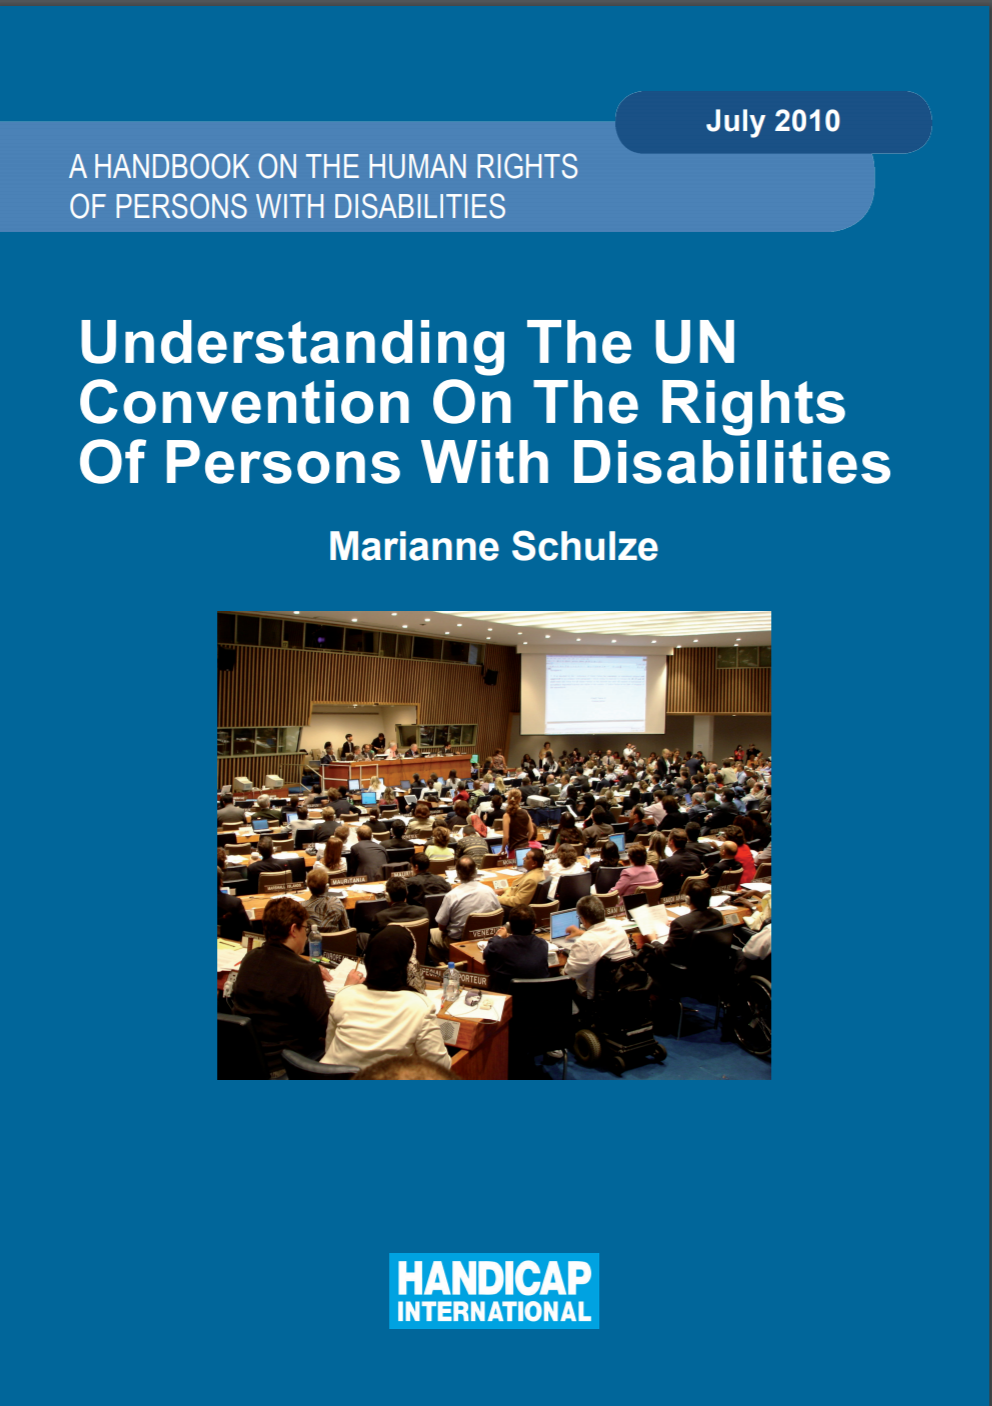 "Cover for CRPD handbook entitled ""A Handbook on the Human Rights of Persons with Disabilities: Understanding the UN Convention on the Rights of Persons with Disabilities"""